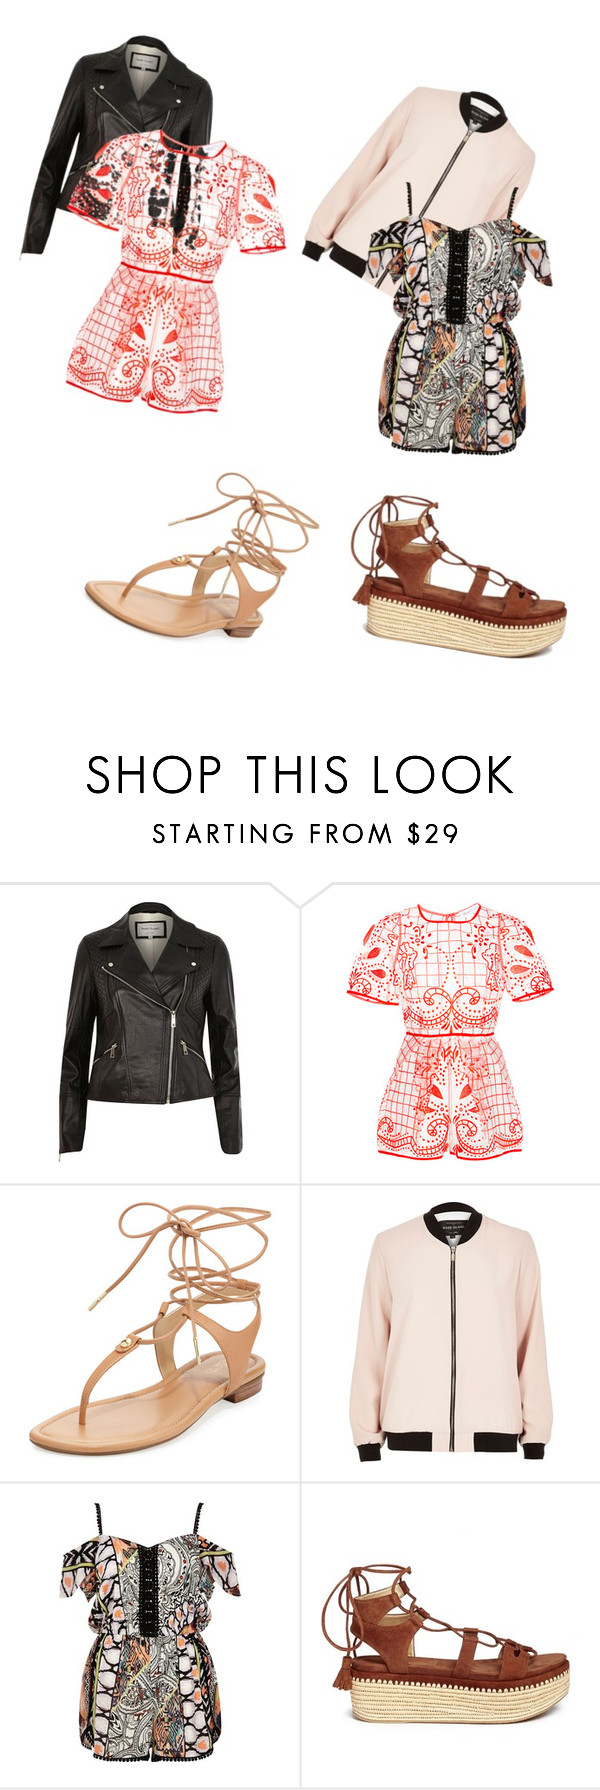 """""""It's just so beautiful"""" by lolacassidy1130 ❤ liked on Polyvore featuring River Island, Alice McCall, MICHAEL Michael Kors and Stuart Weitzman"""